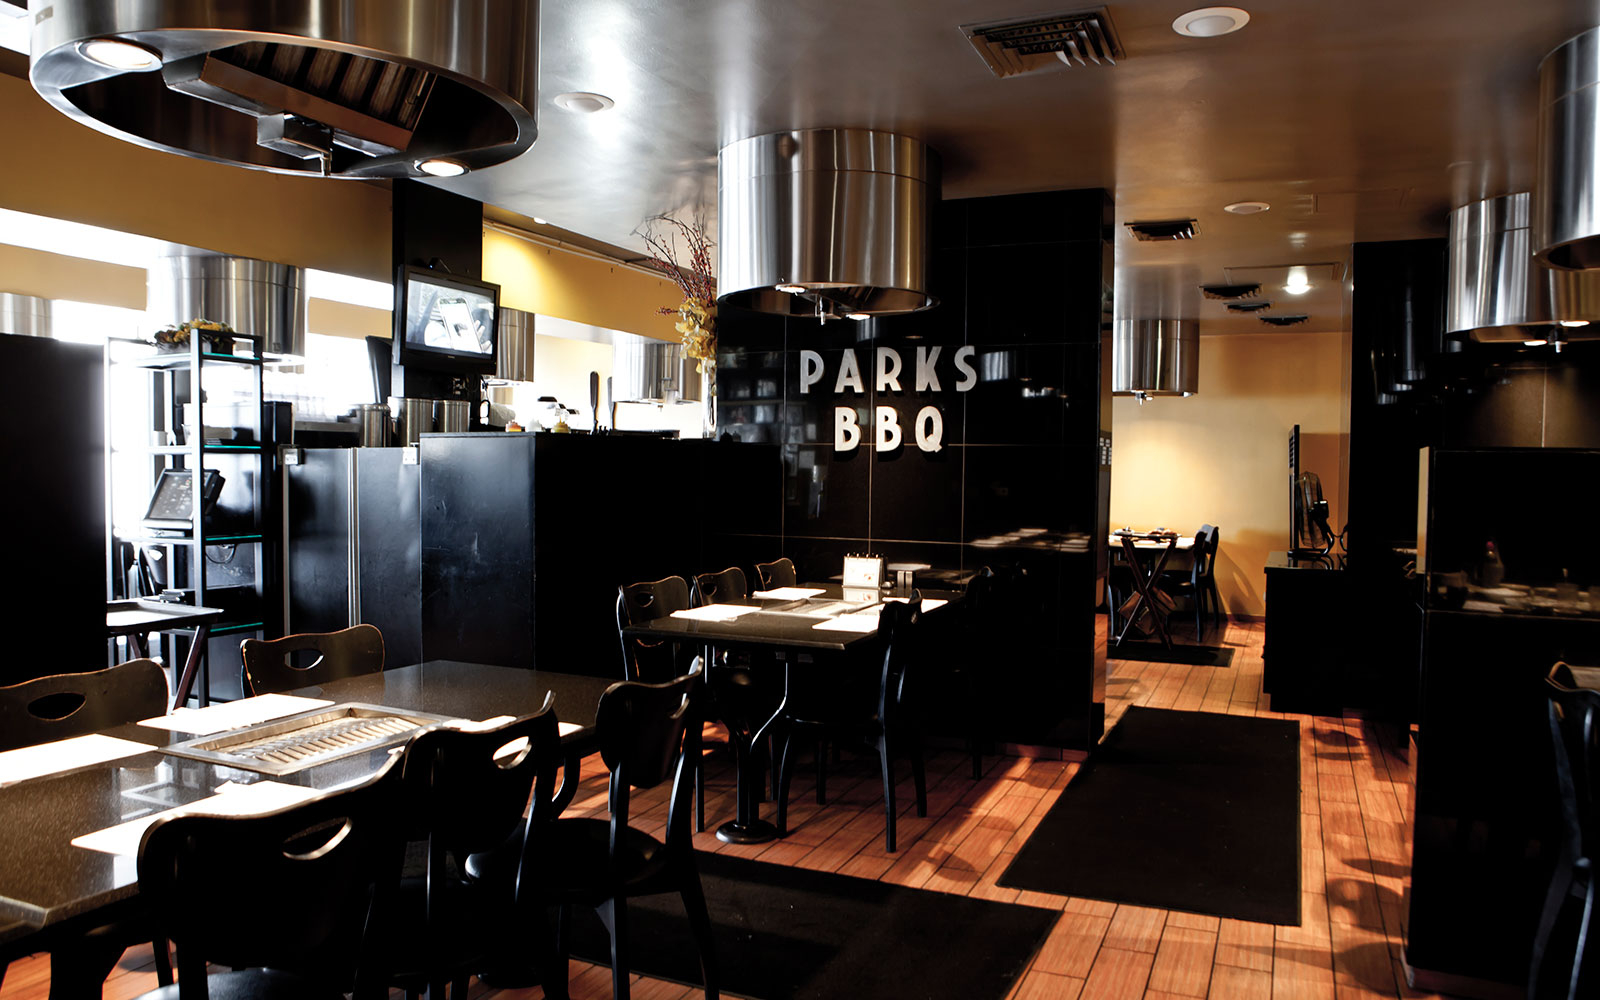 7 p.m.: Feast on Korean Barbecue at Park's BBQ